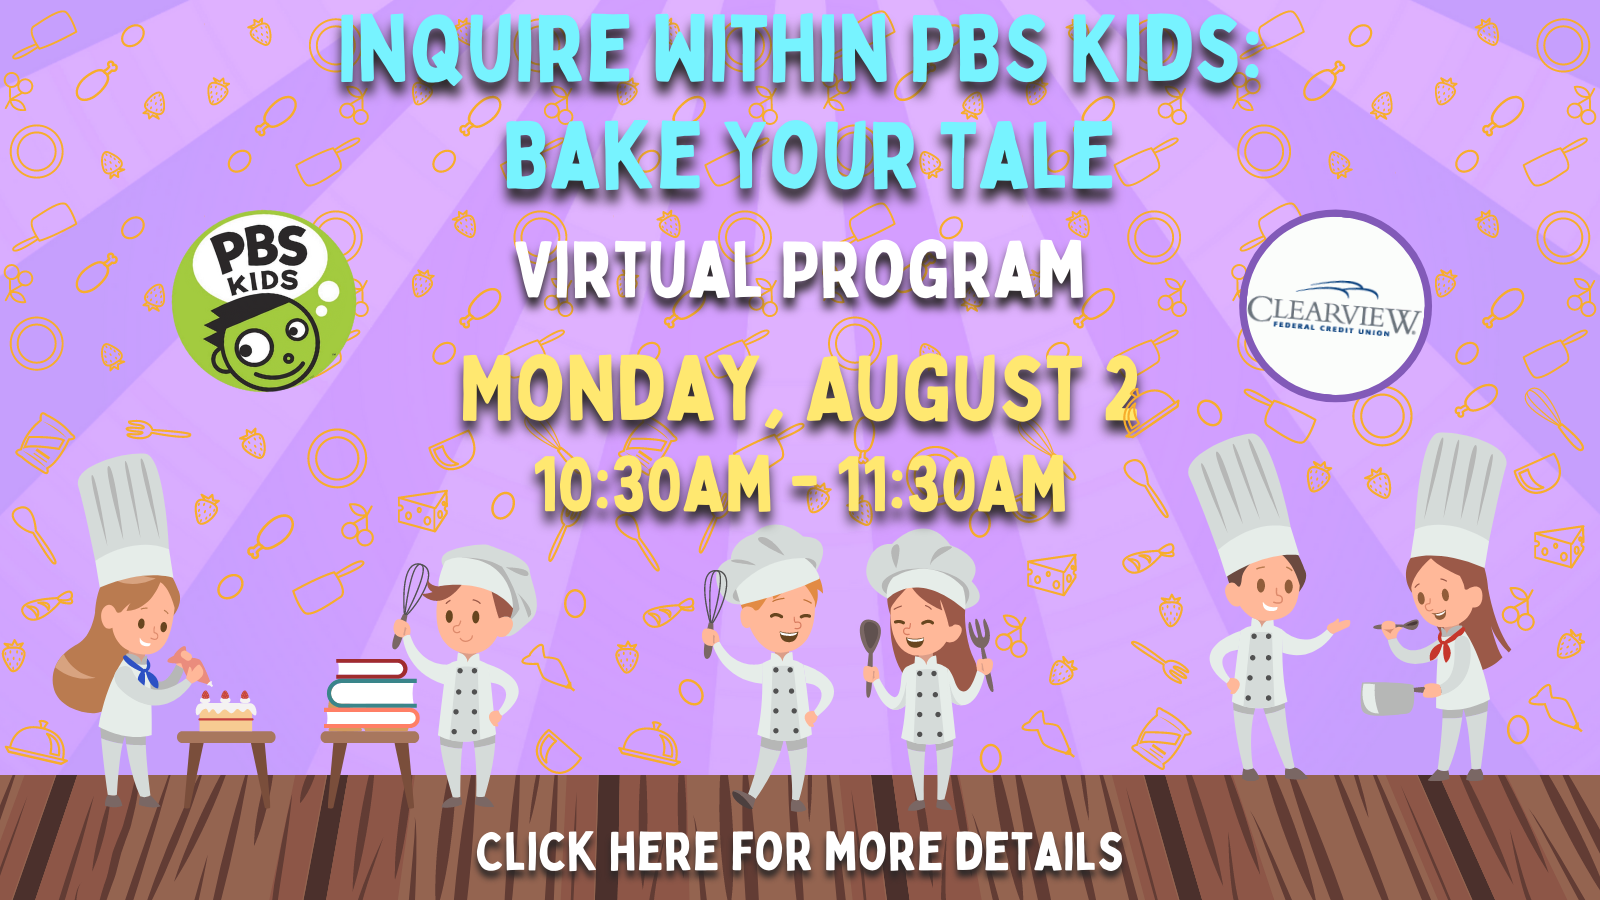 Inquire Within PBS Kids Bake Your Tale